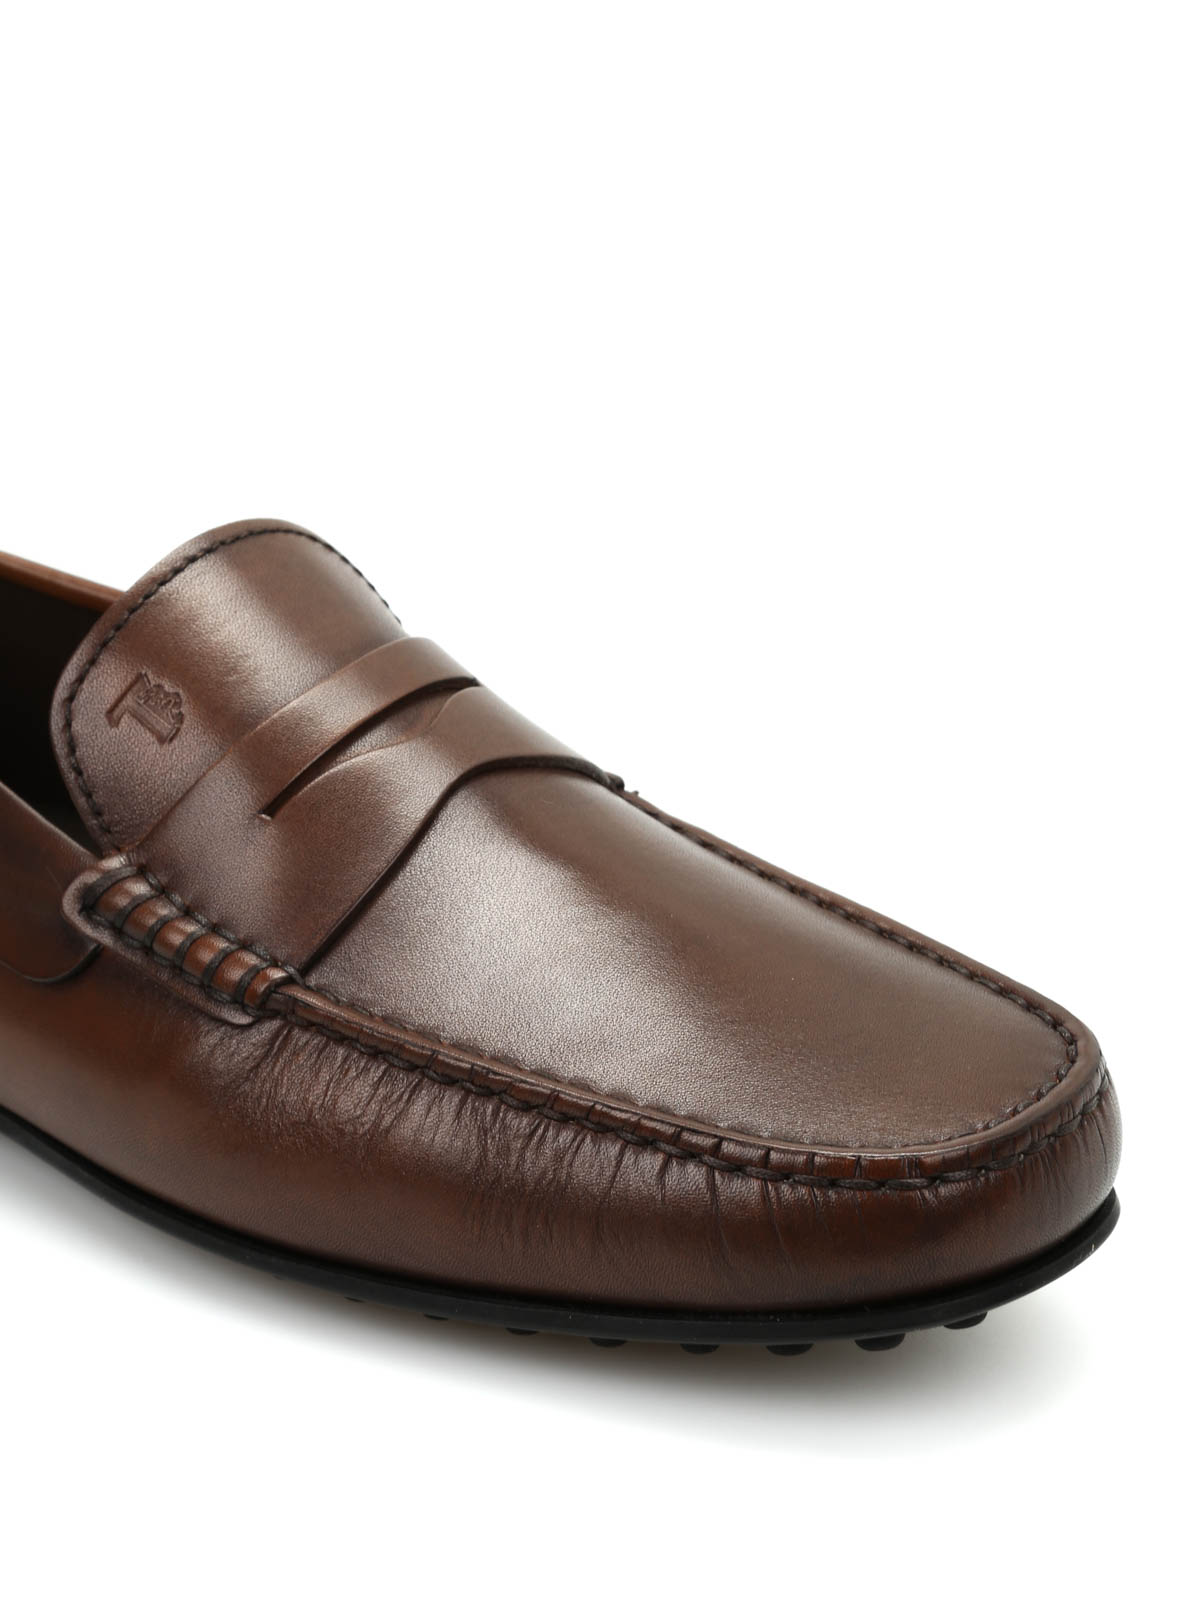 5dadebe6245 Tod S - City Gommino leather loafers - Loafers   Slippers ...